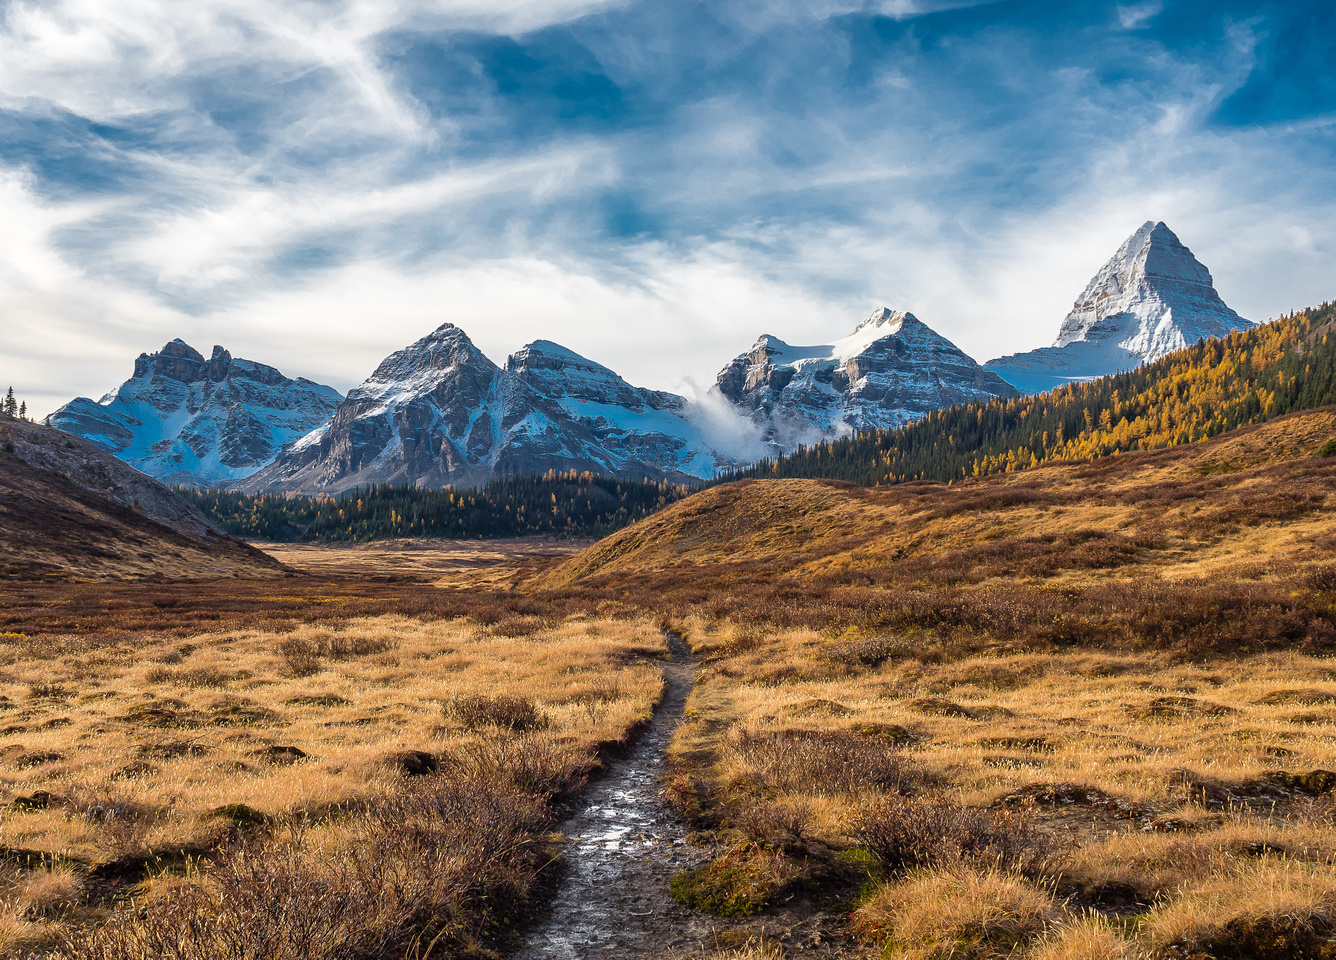 Looking back at The Towers, Naiset Point, Terrapin, Magog and Mount Assiniboine (L to R).